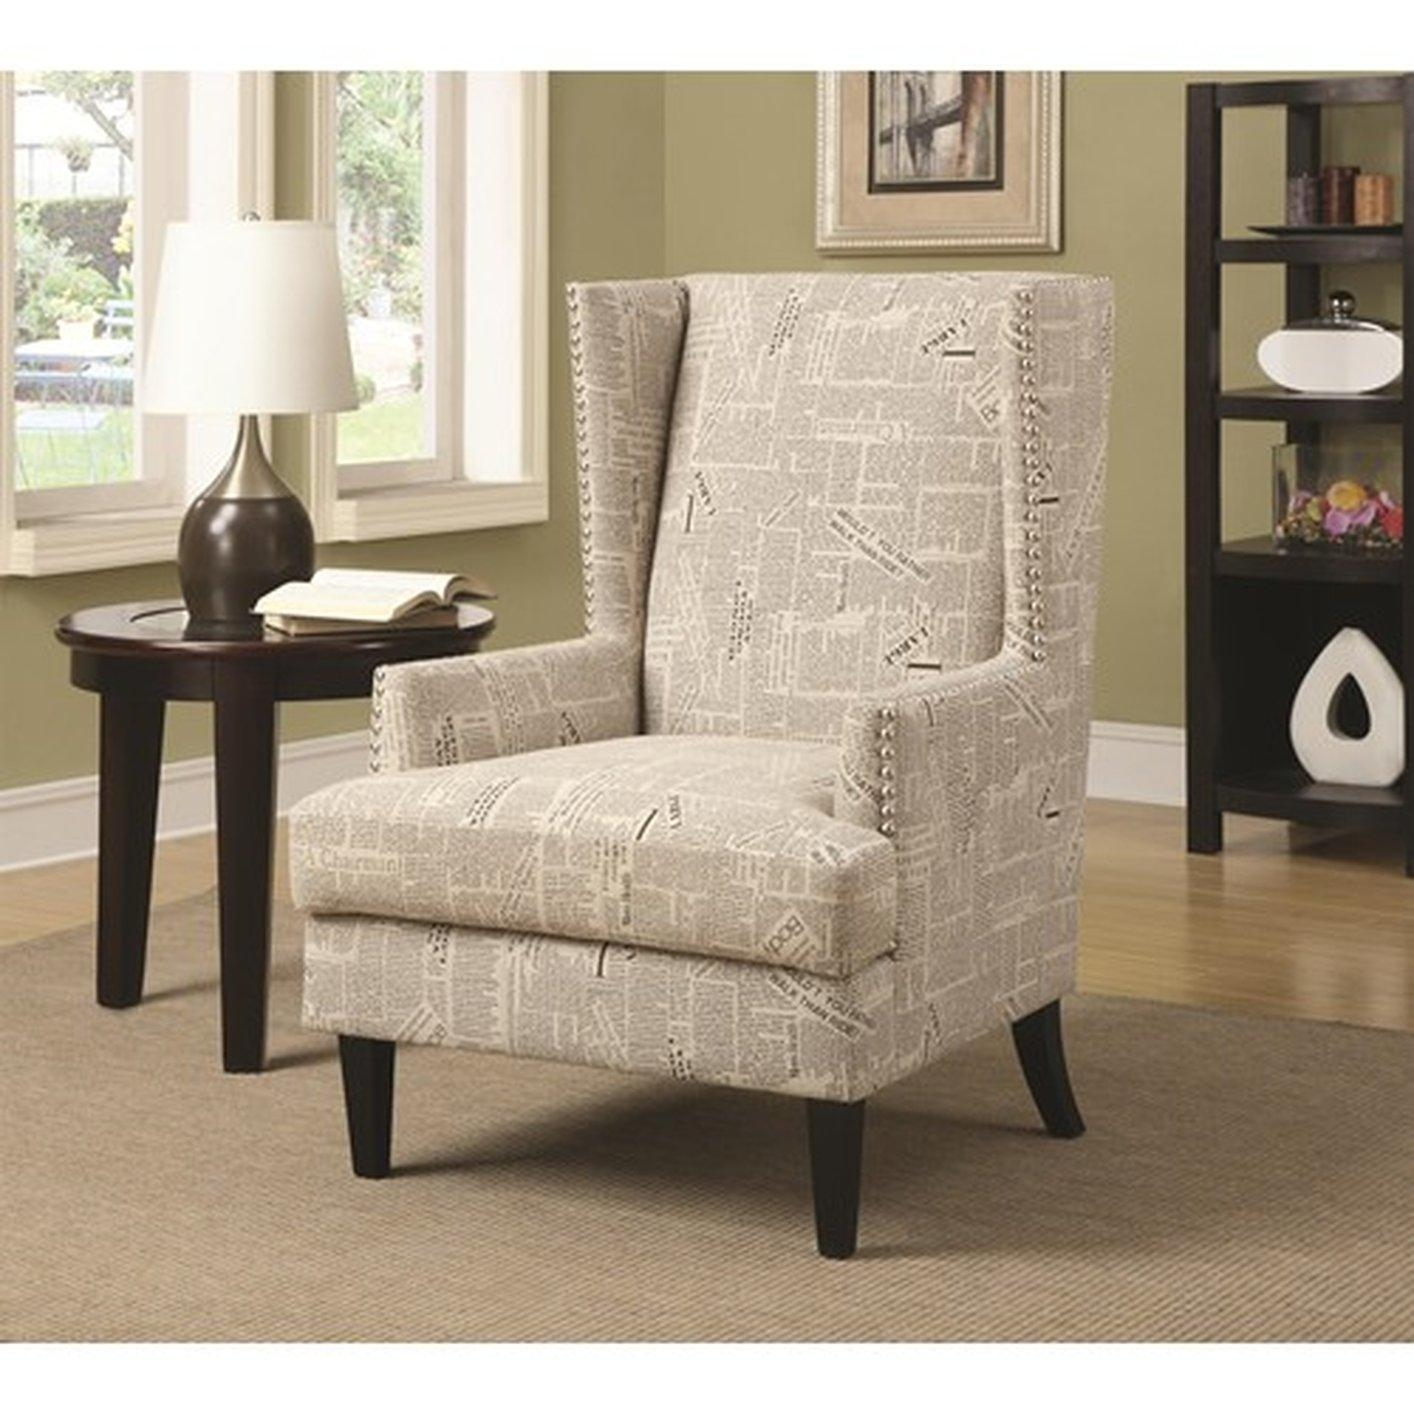 Chair Fabric Accent Chair Upholstered Chairs With Arms Whi Fabric Intended For Accent Sofa Chairs (Image 8 of 20)